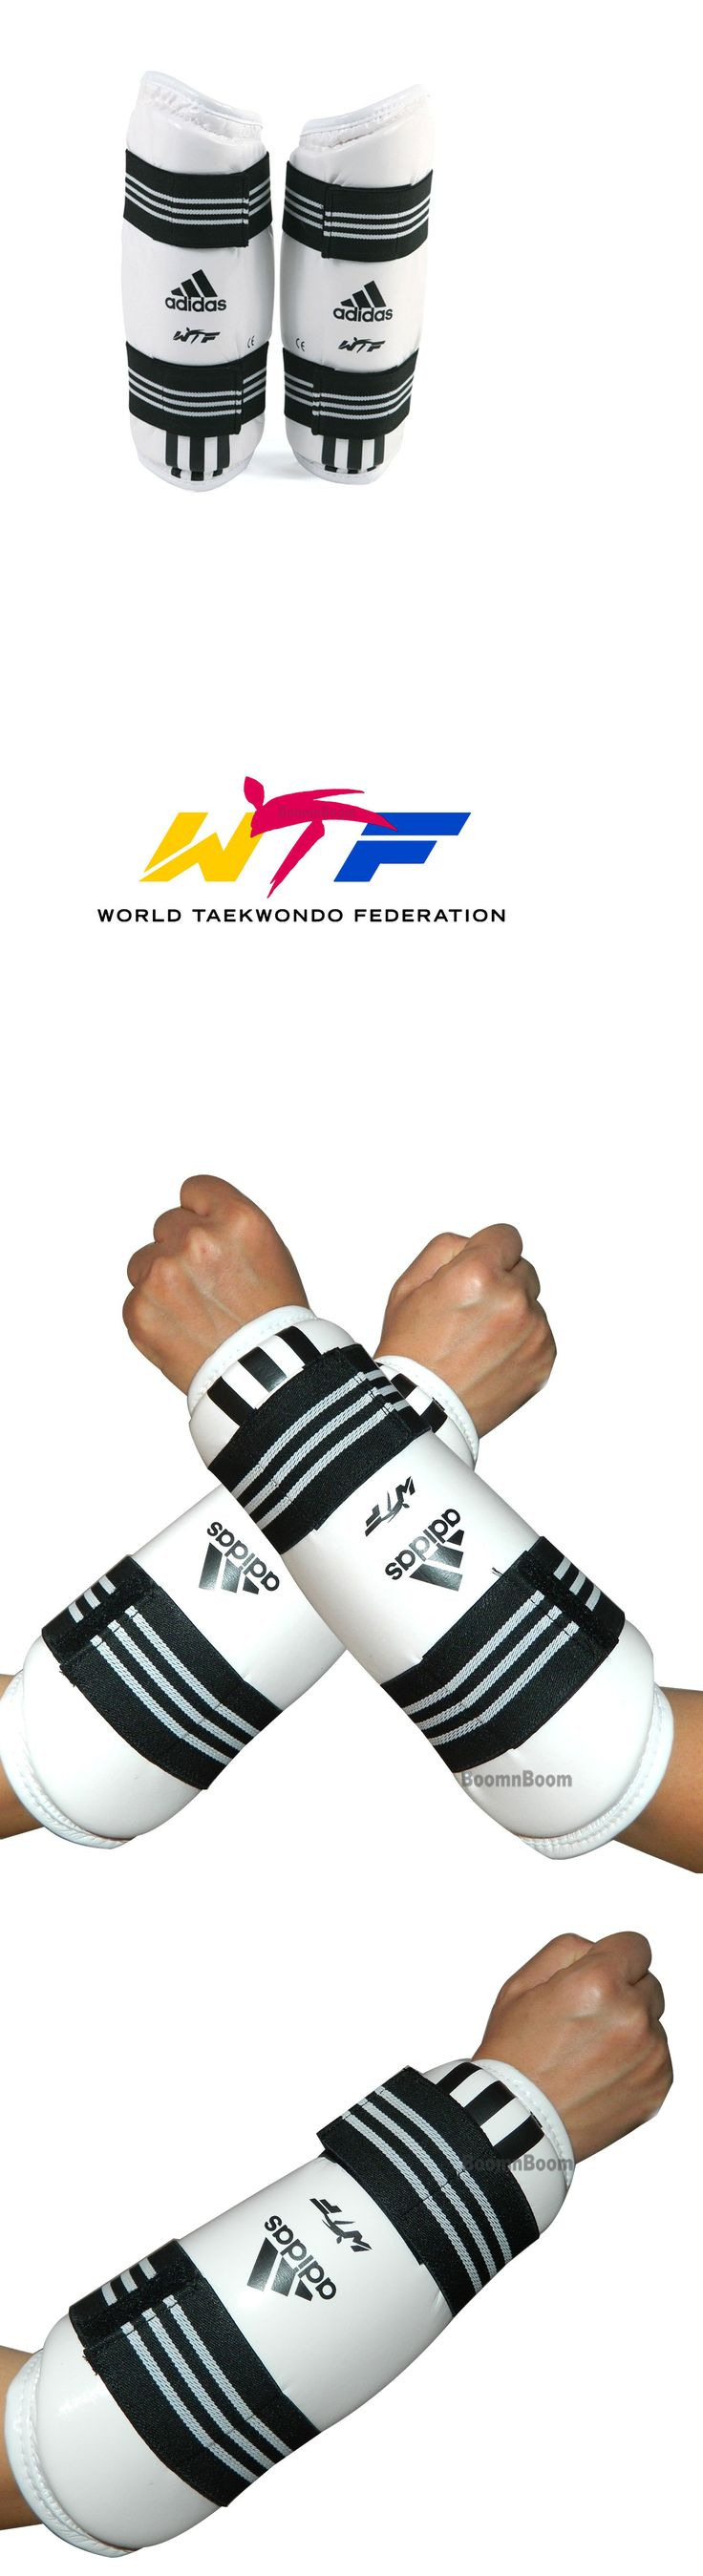 Elbow Knee and Ankle Guards 179777: Adidas Taekwondo Karate Mma Forearm Protector, Arm Guard Taekwondo Sparring Gear BUY IT NOW ONLY: $31.99